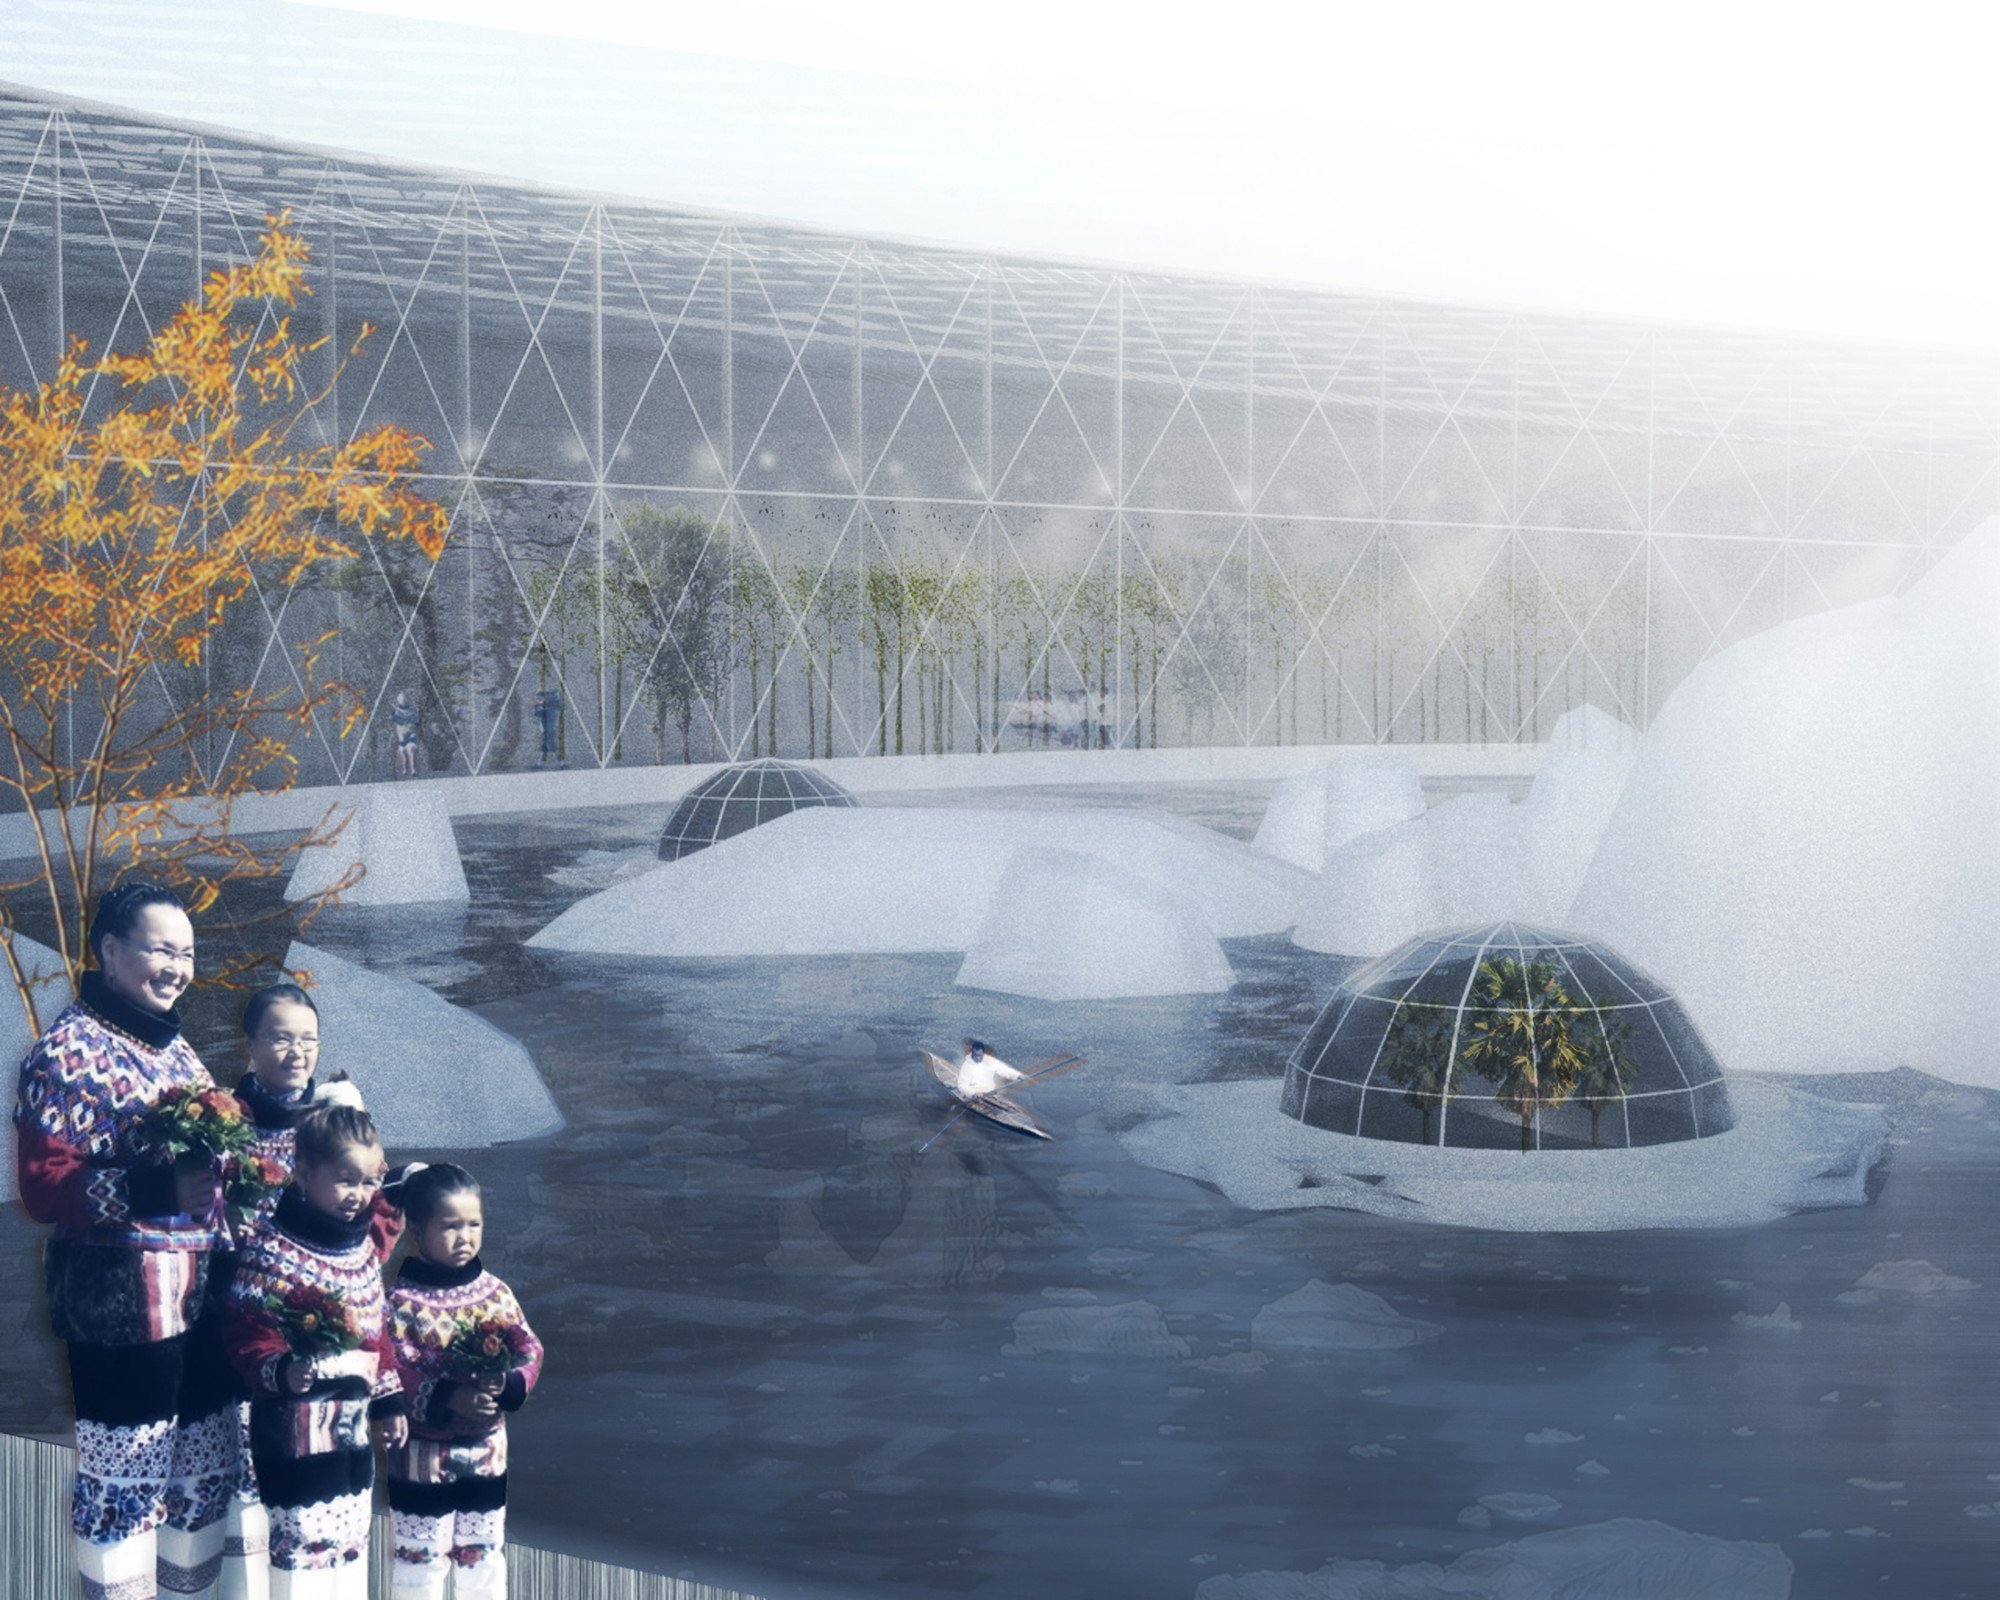 Arctic Harvester Proposes Large-Scale Hydroponic-Farming Near Greenland